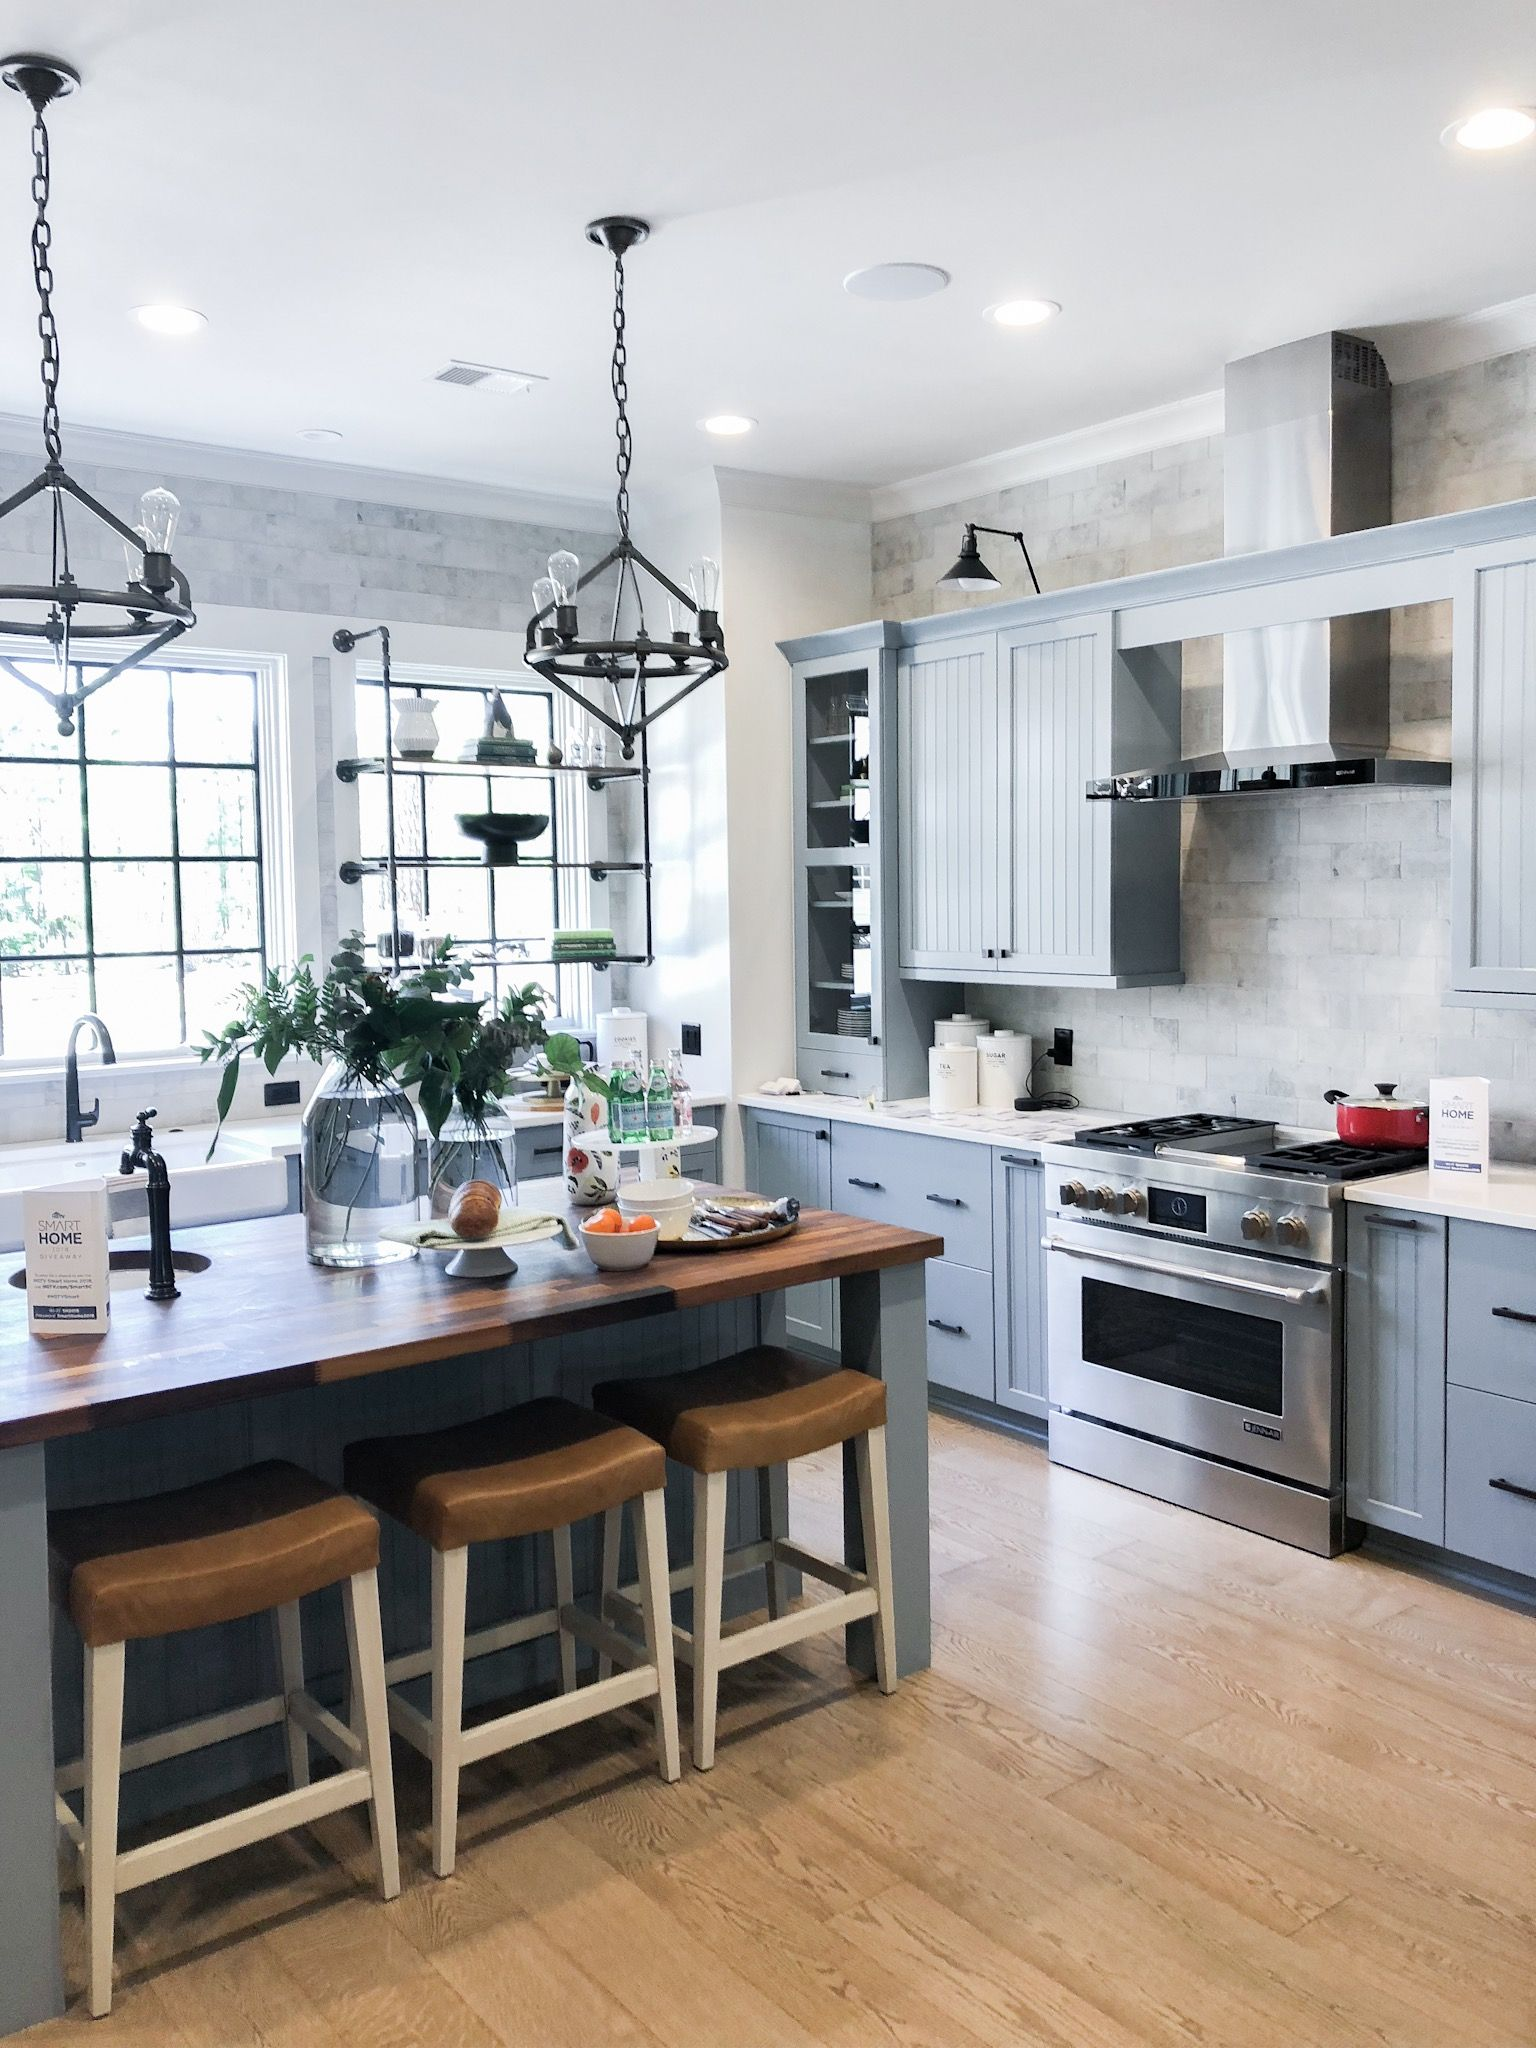 Recreate This Modern Southern Kitchen In Your Home Without A